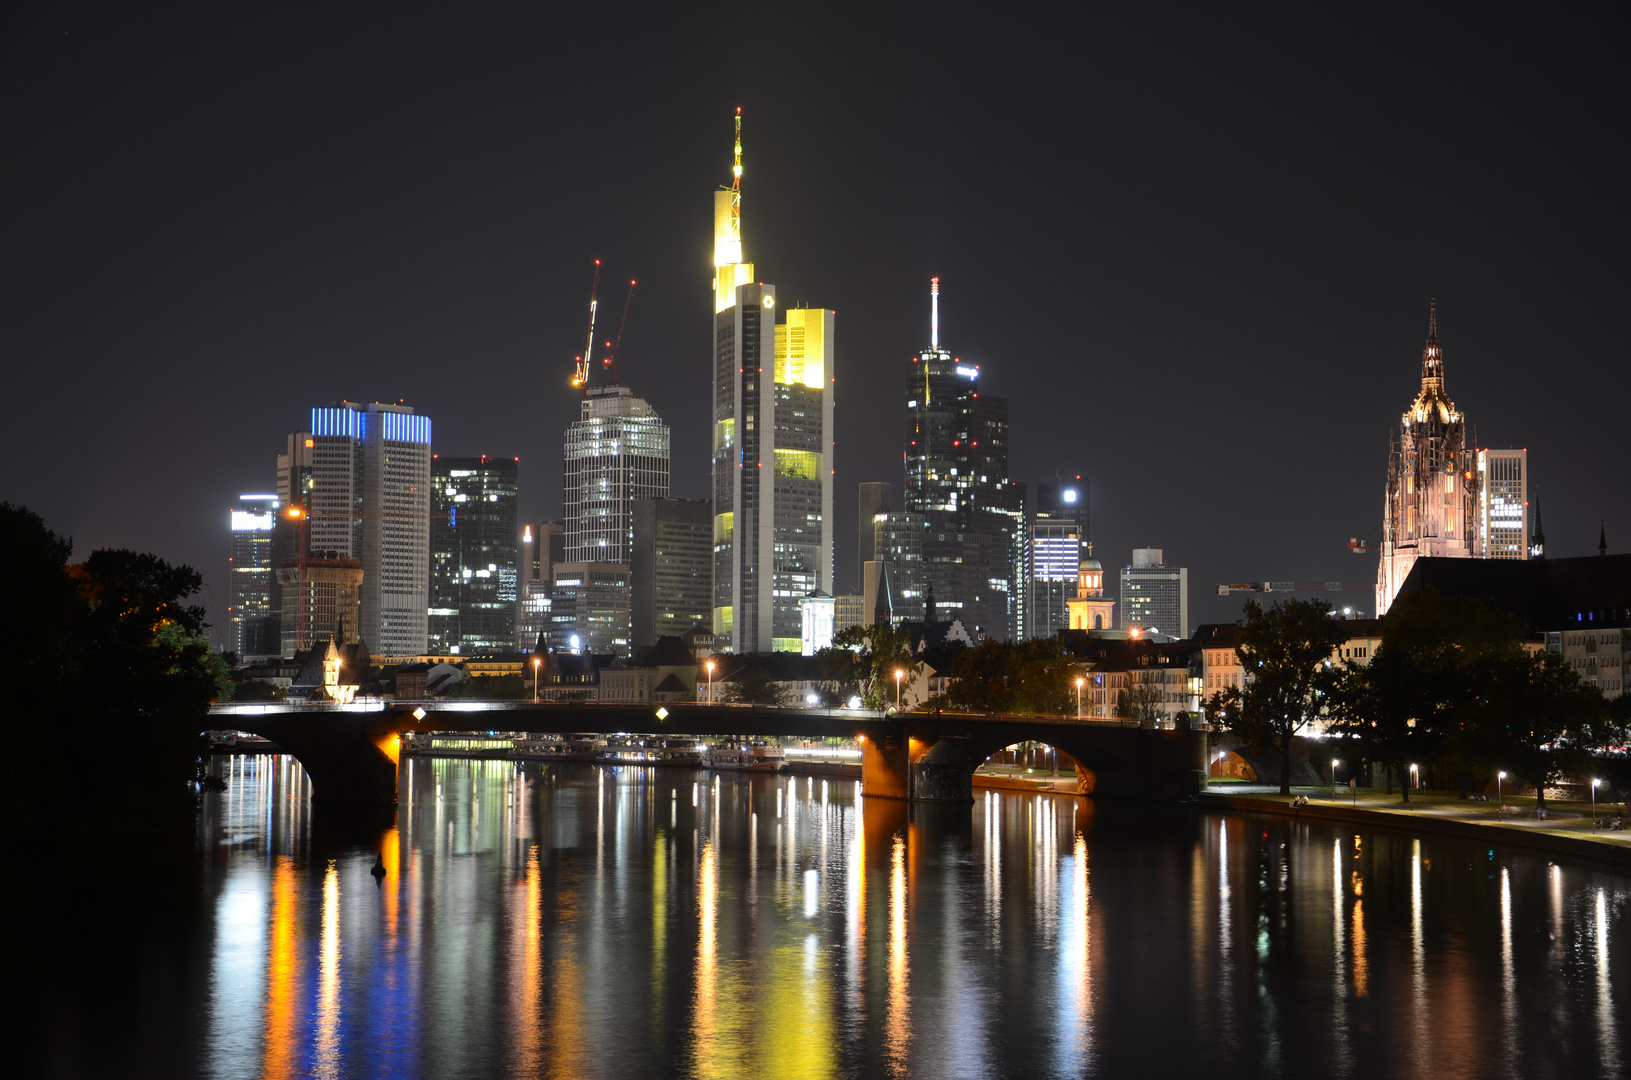 skyline frankfurt bei nacht foto bild architektur stadtlandschaft stadtlandschaften bei. Black Bedroom Furniture Sets. Home Design Ideas